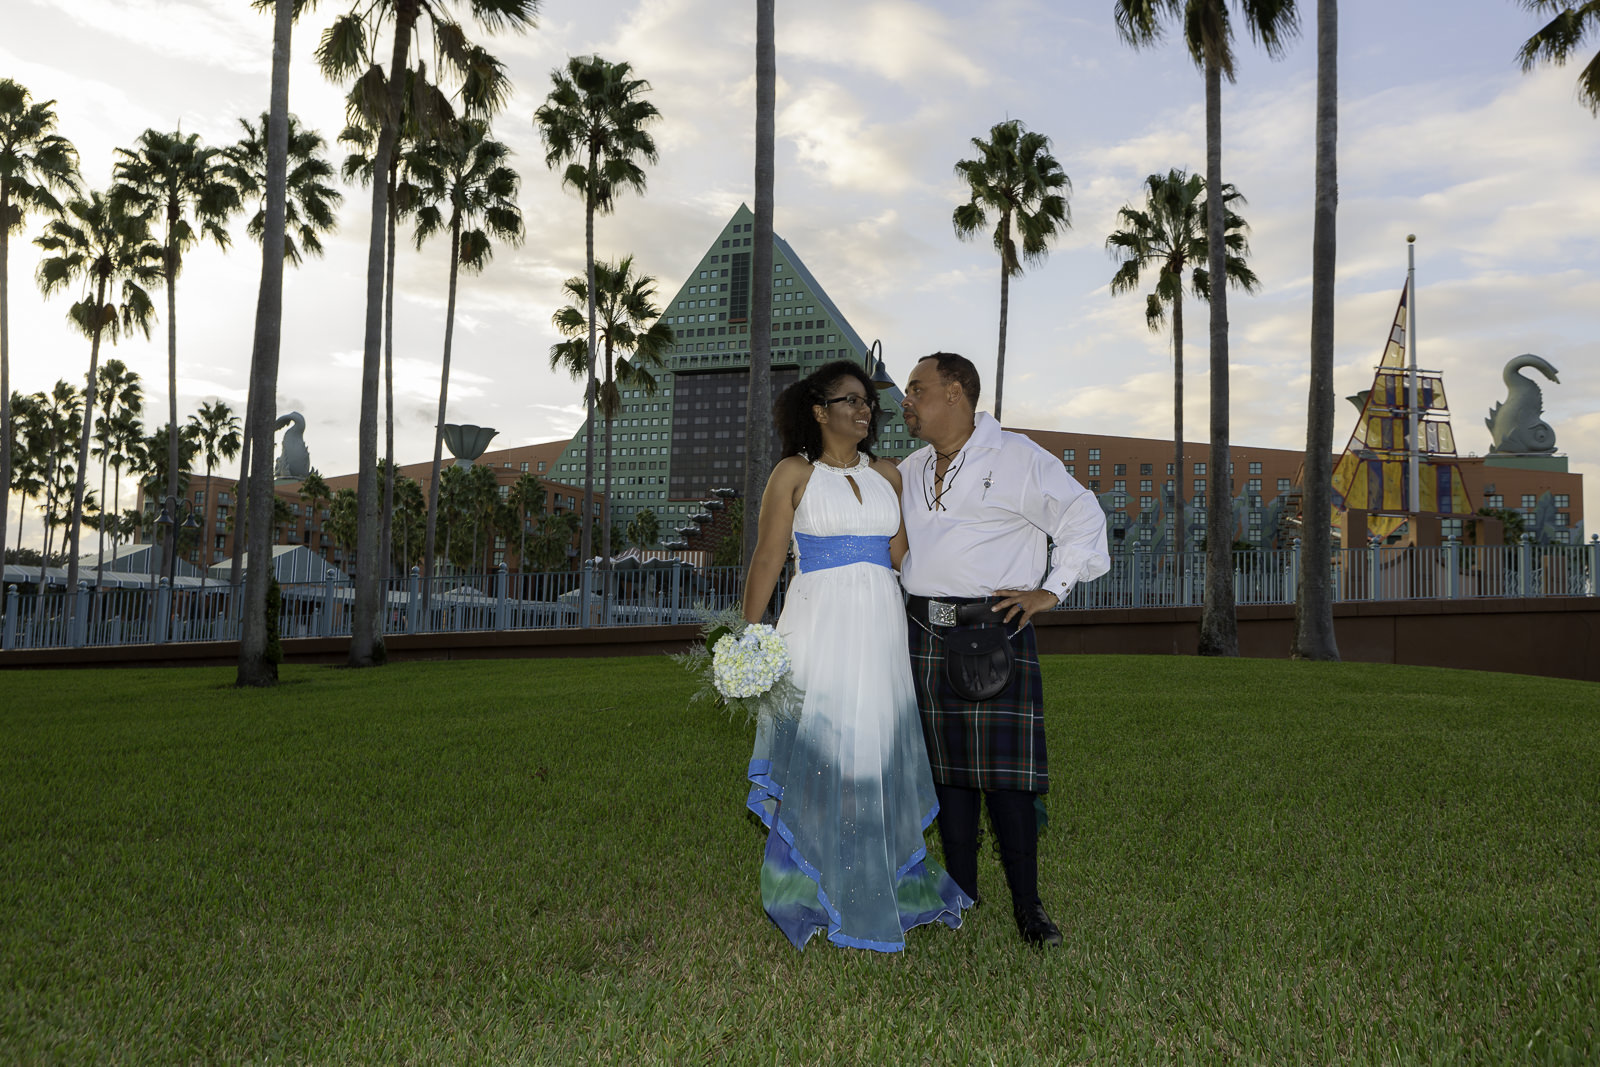 Swan and Dolphin Wedding in Orlando | Reccia and Leonard